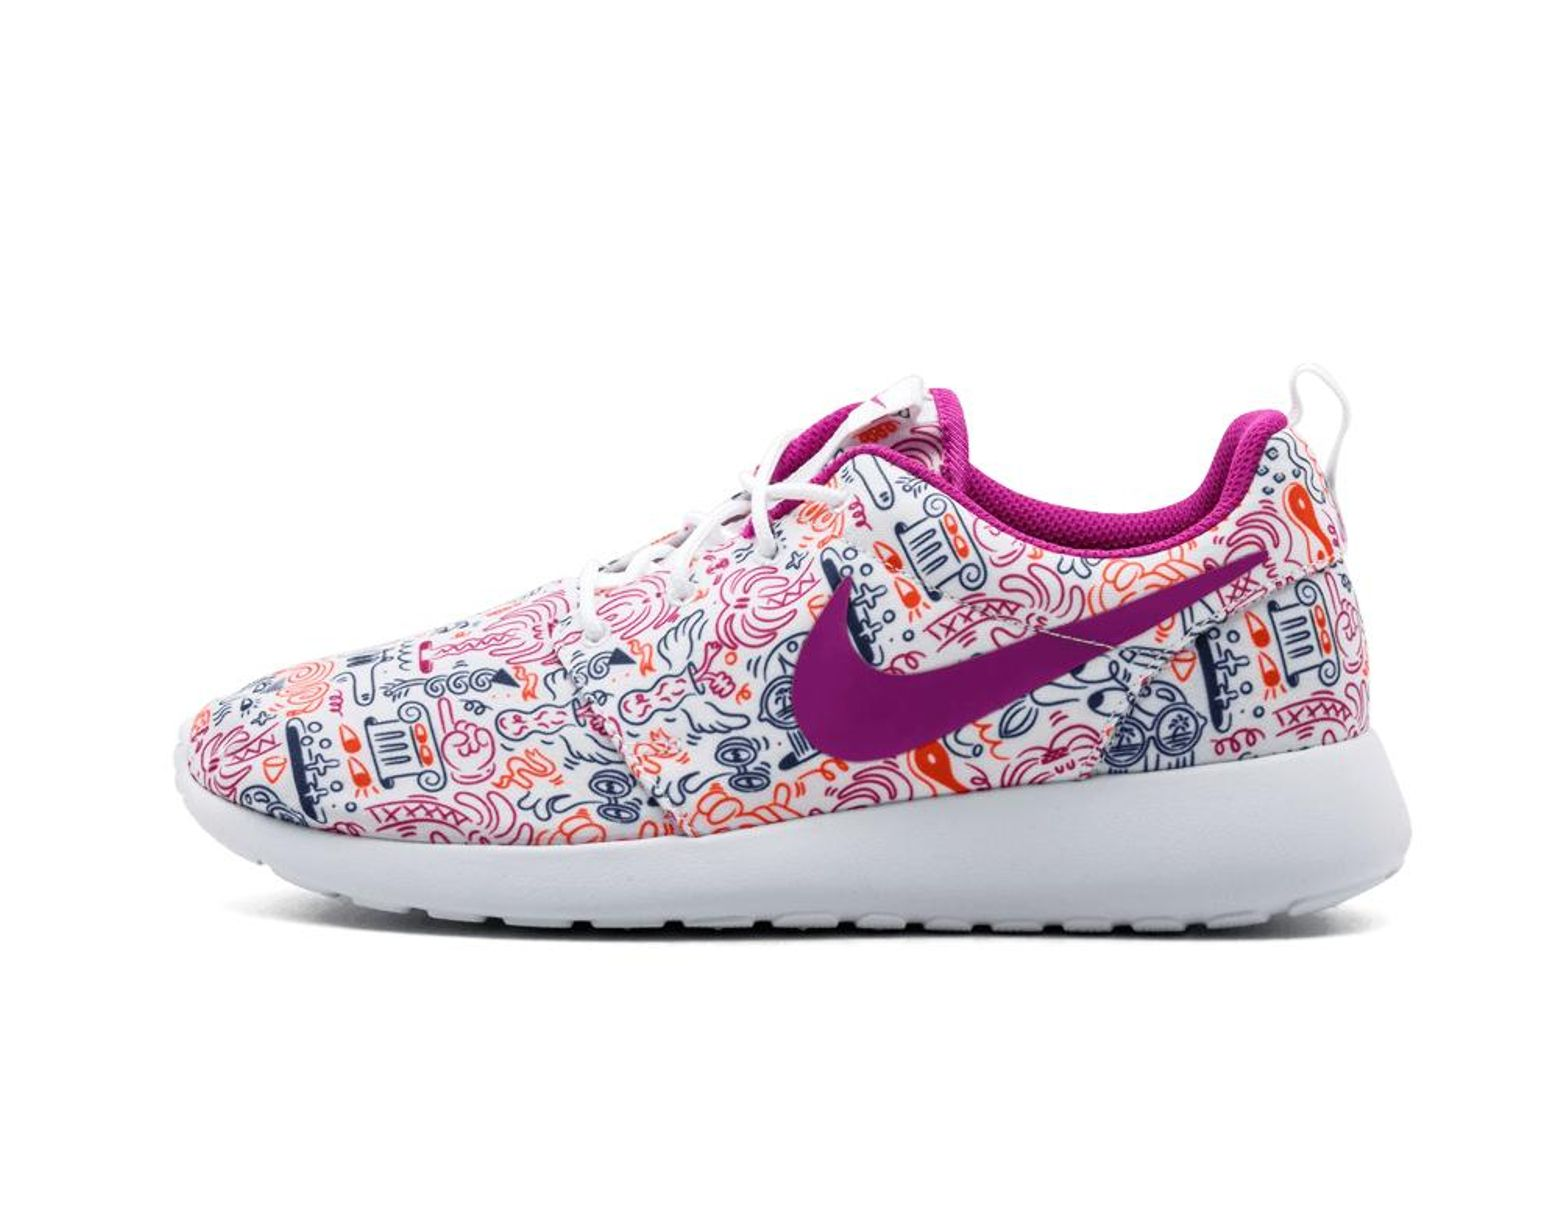 White Womens Roshe One Print Prem Size 7.5w